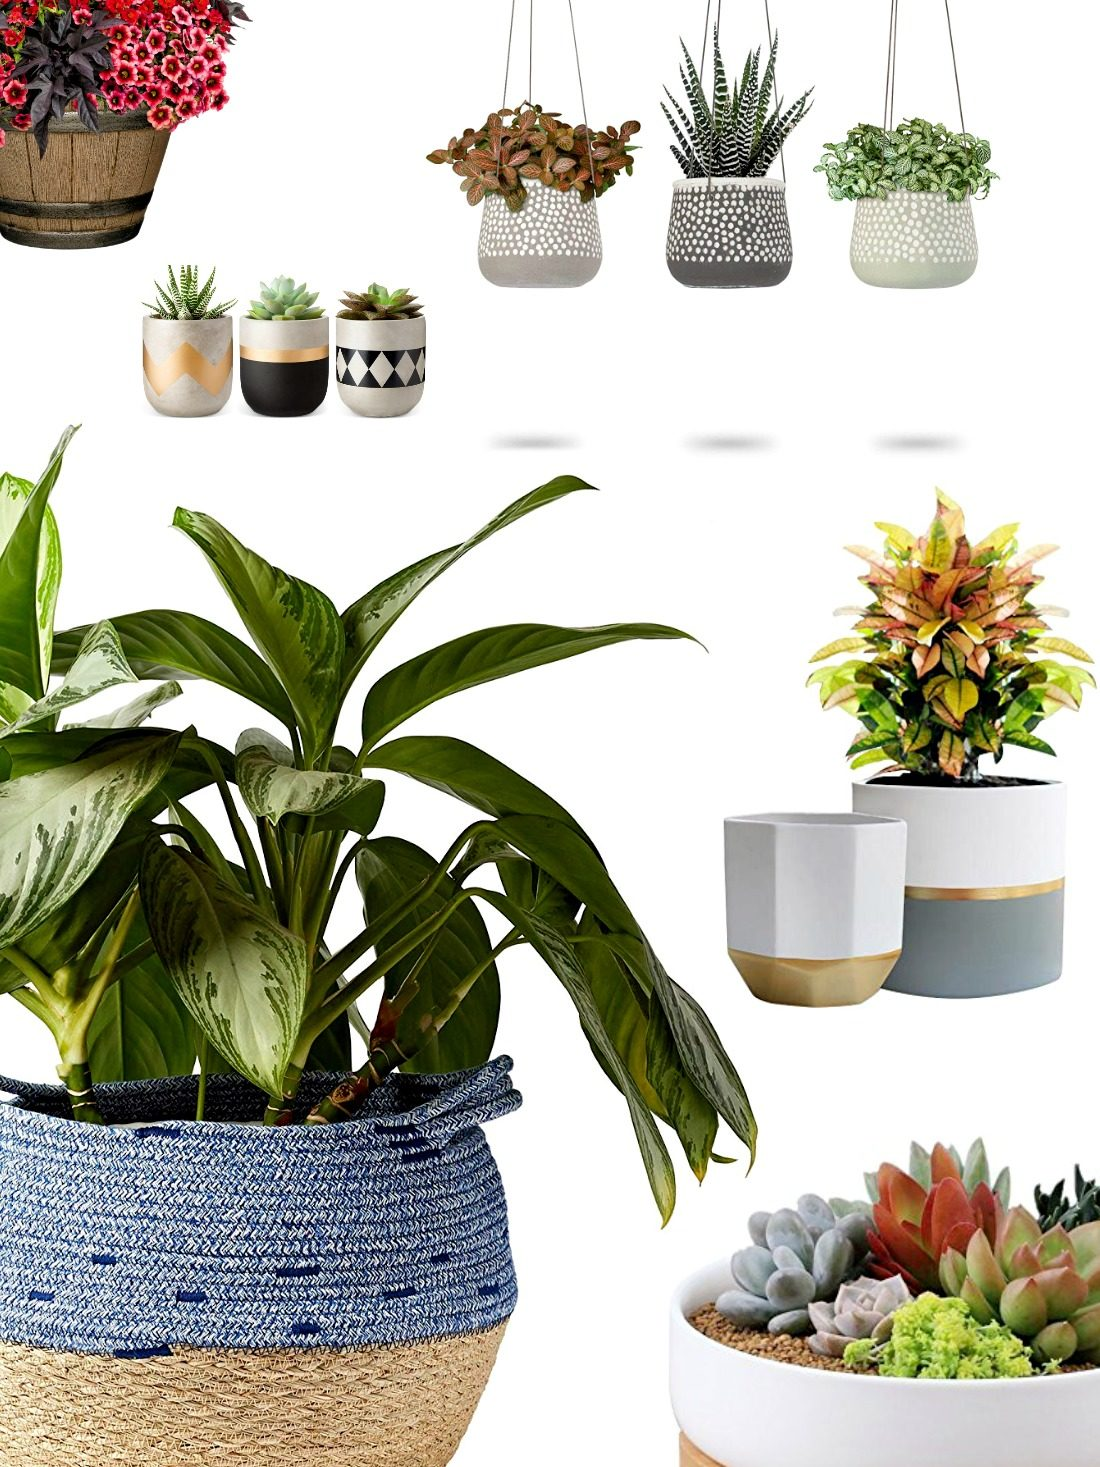 Pick out your favorite pots & planters in this selection of gorgeous options to re-energize your home and wake up your patio to spring!